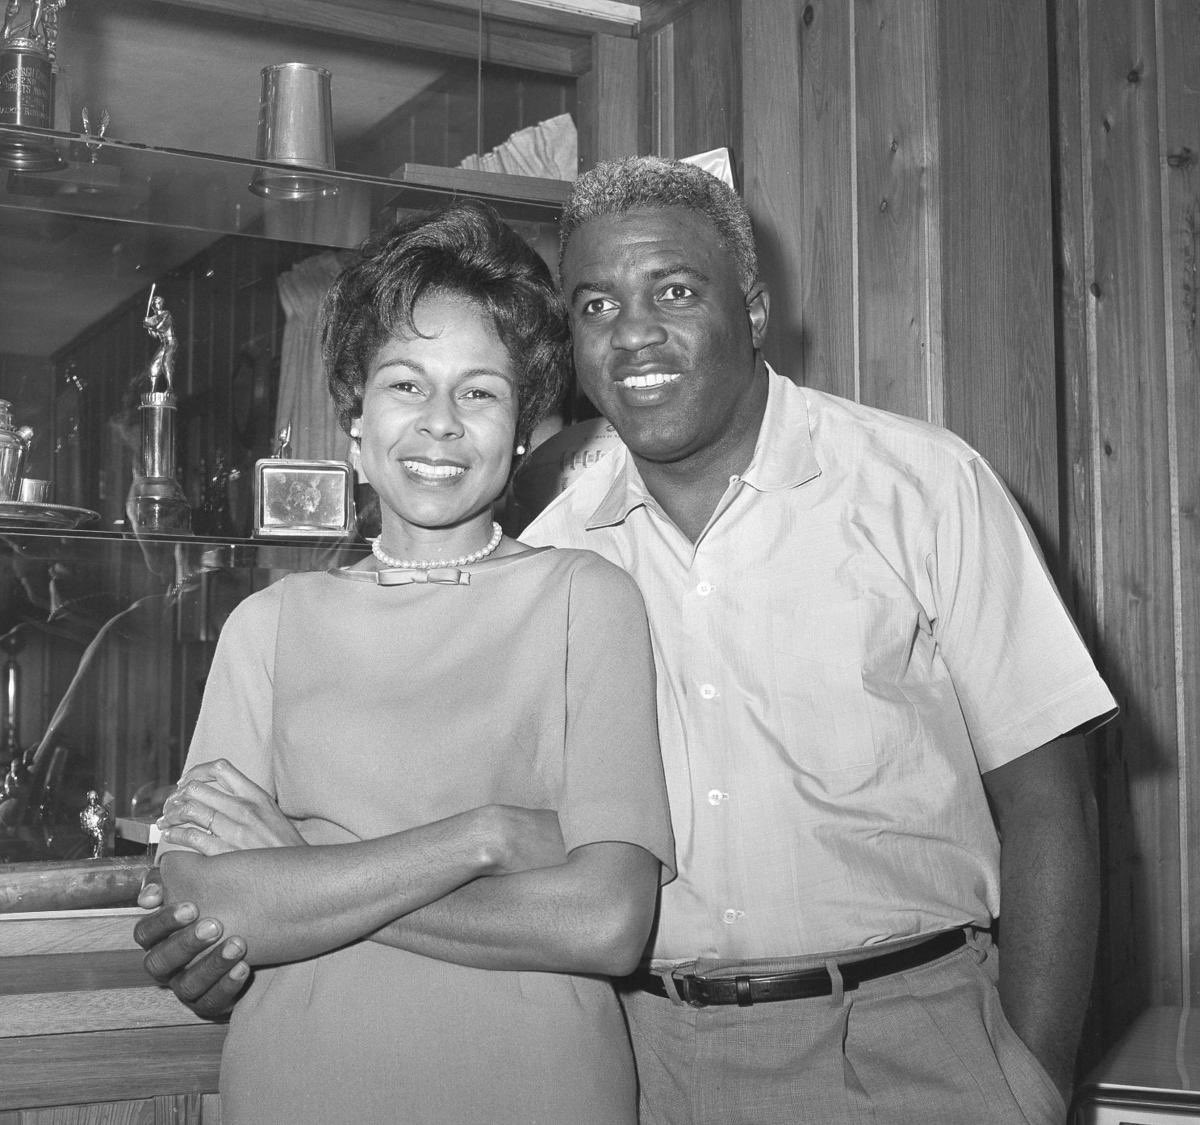 Happy 97th Birthday to Rachel Robinson - stunning as ever!  Stay tuned for a NEW exclusive line of Jackie Robinson officially licensed UCLA products given the stamp of approval by Rachel herself! #ComingSoon<br>http://pic.twitter.com/zODjx4qnH4